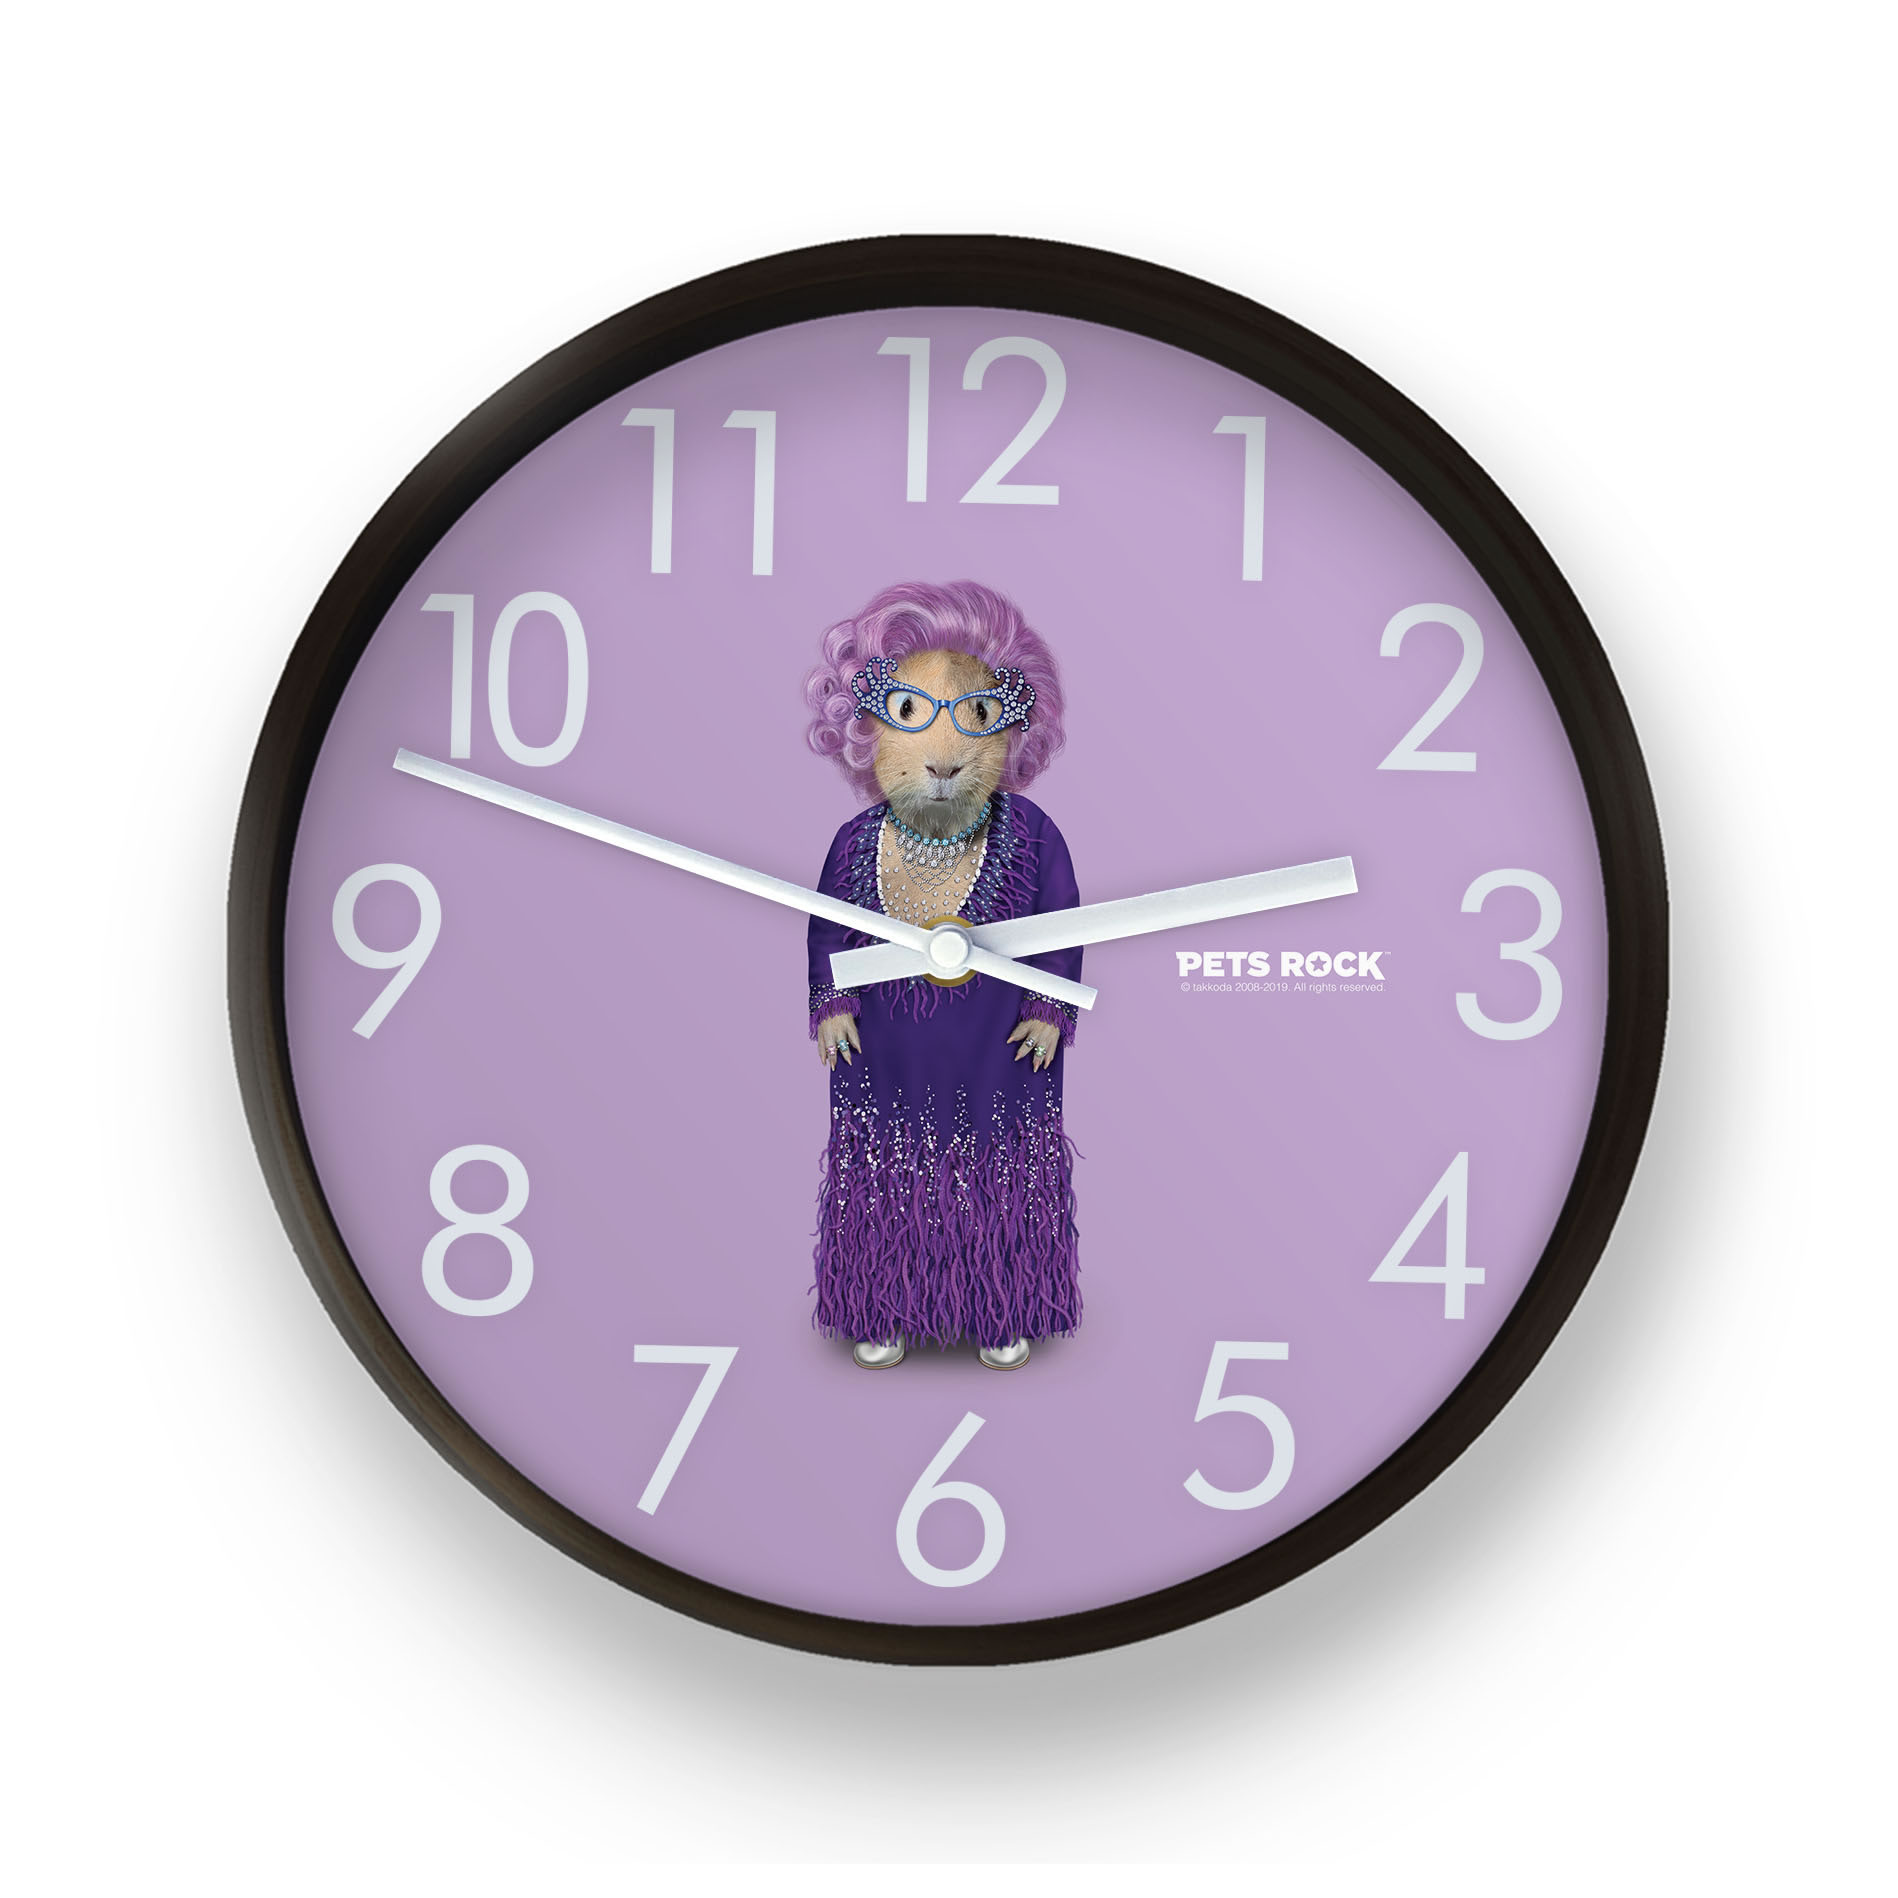 Possum Pets Rock Wall Clock